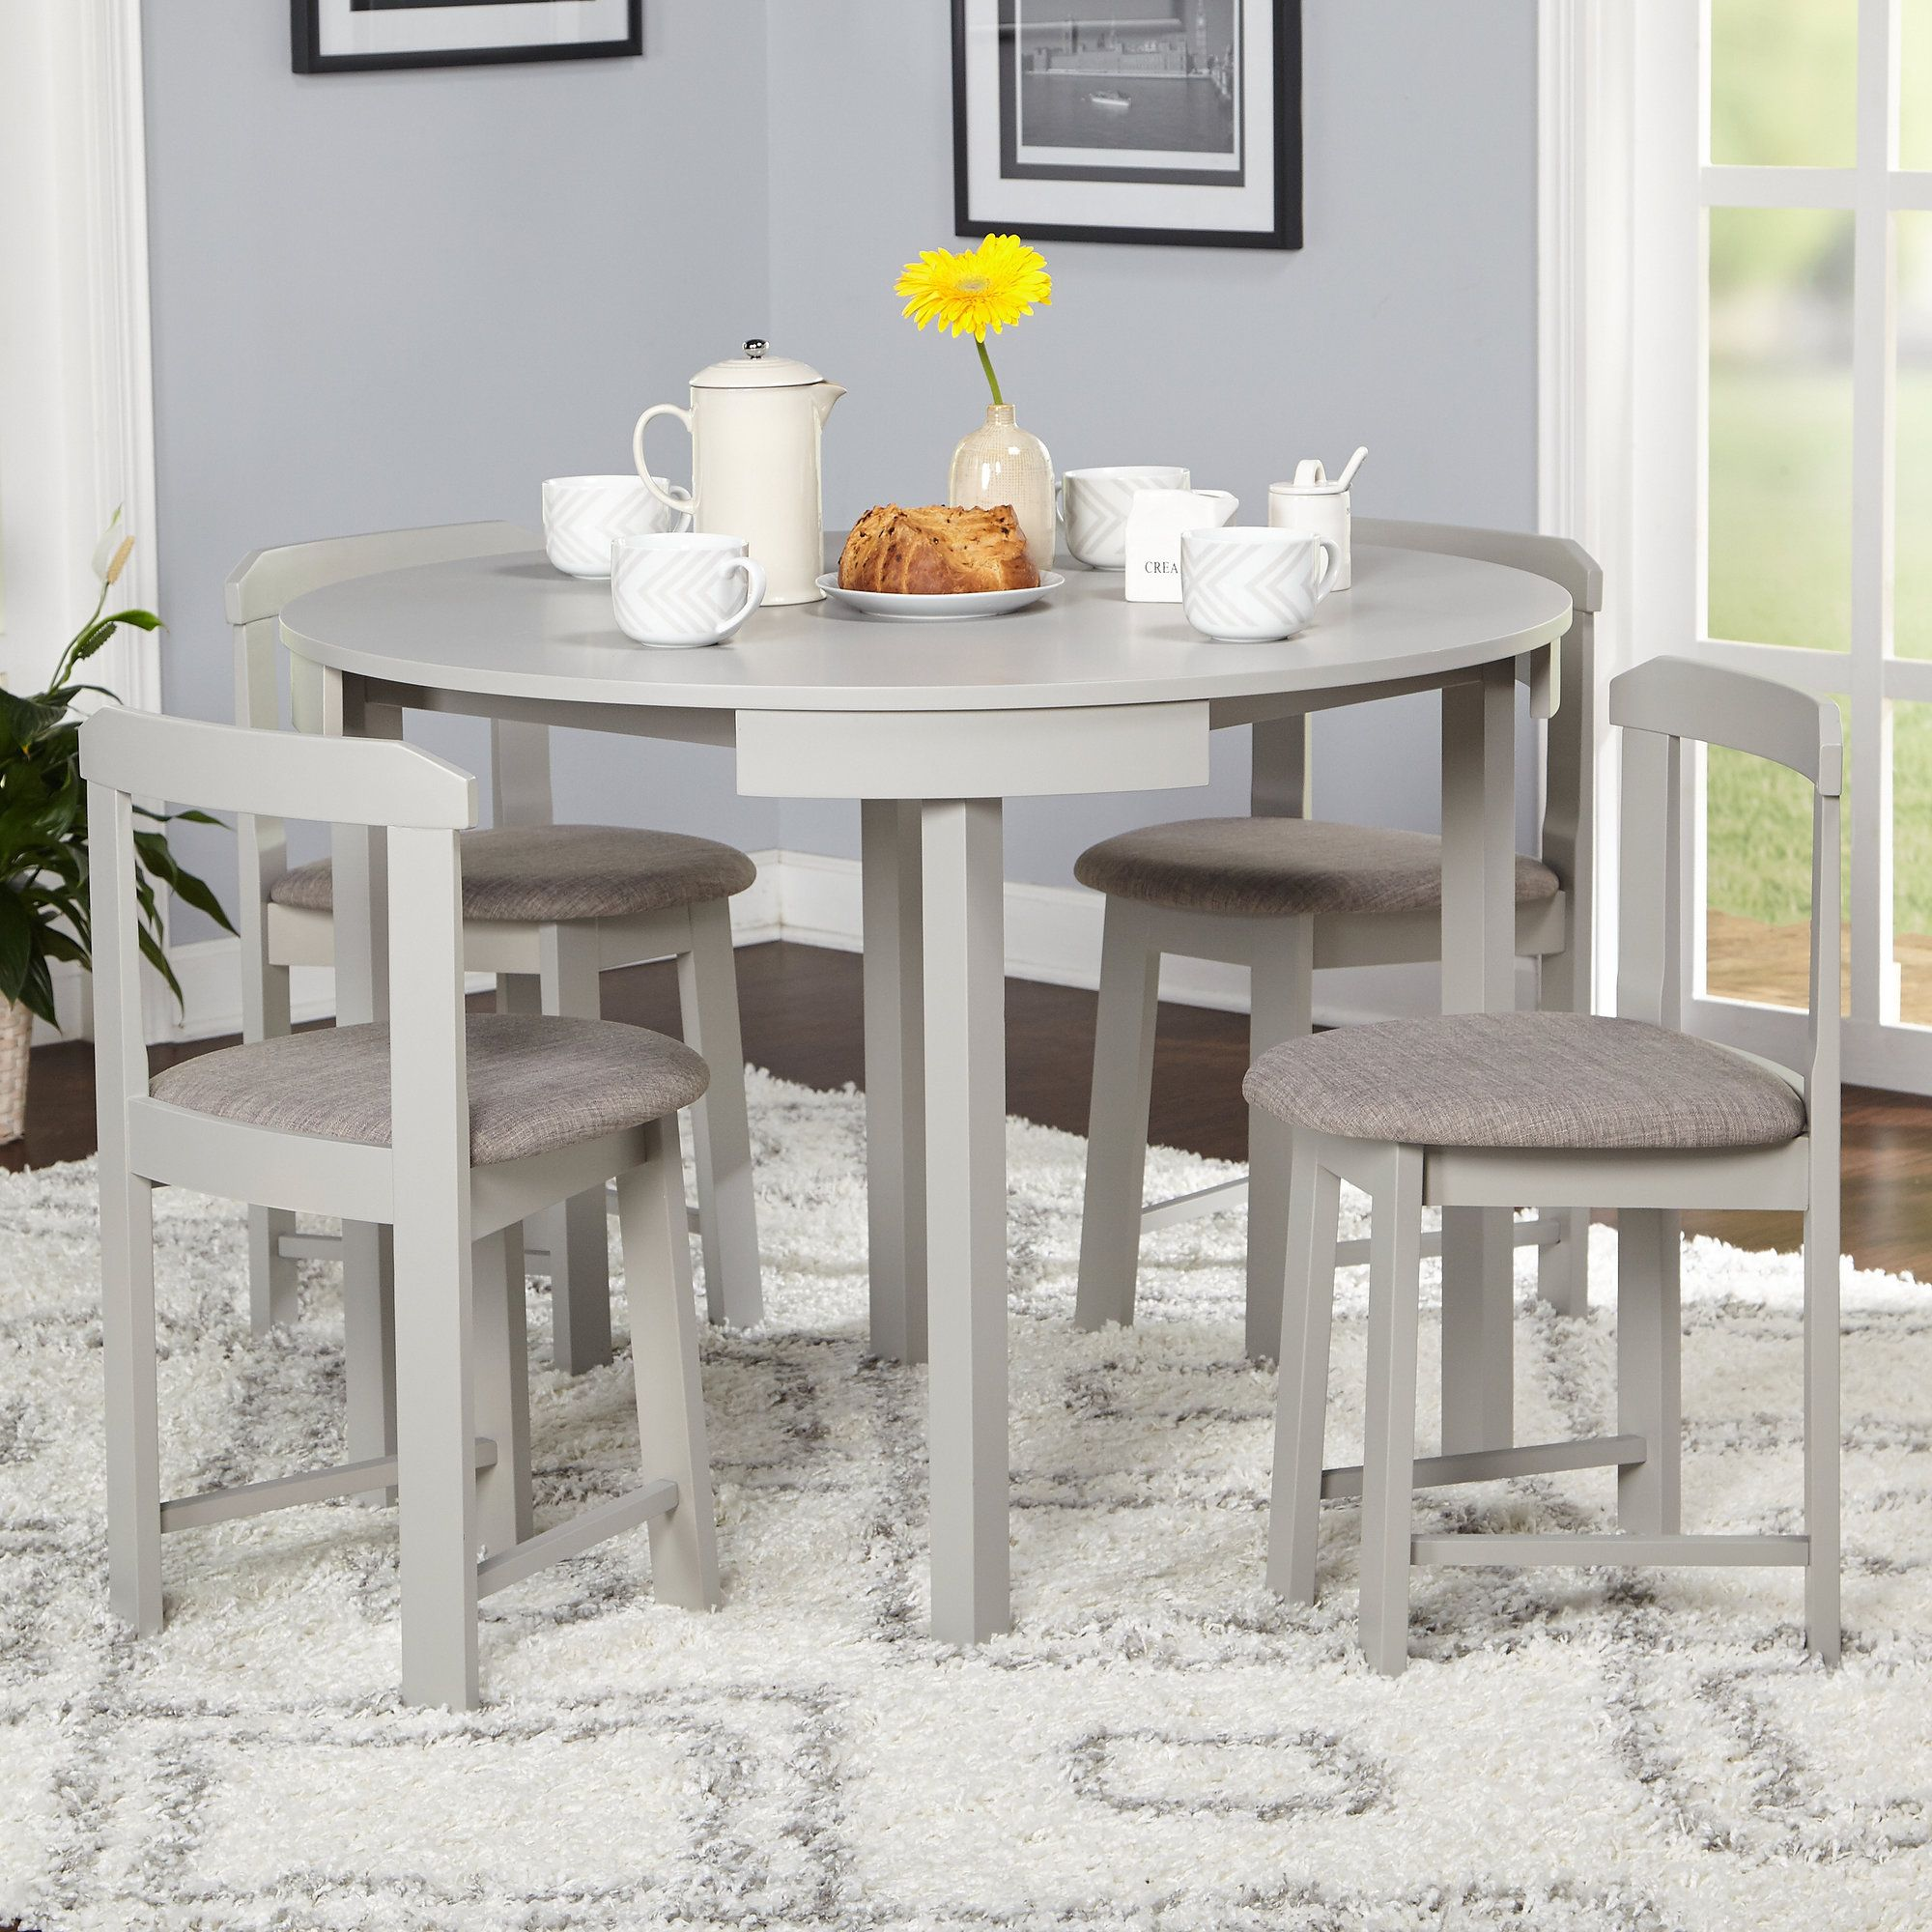 Mabelle 5 Piece Dining Set Dining Room Small Dining Room Sets Round Dining Set